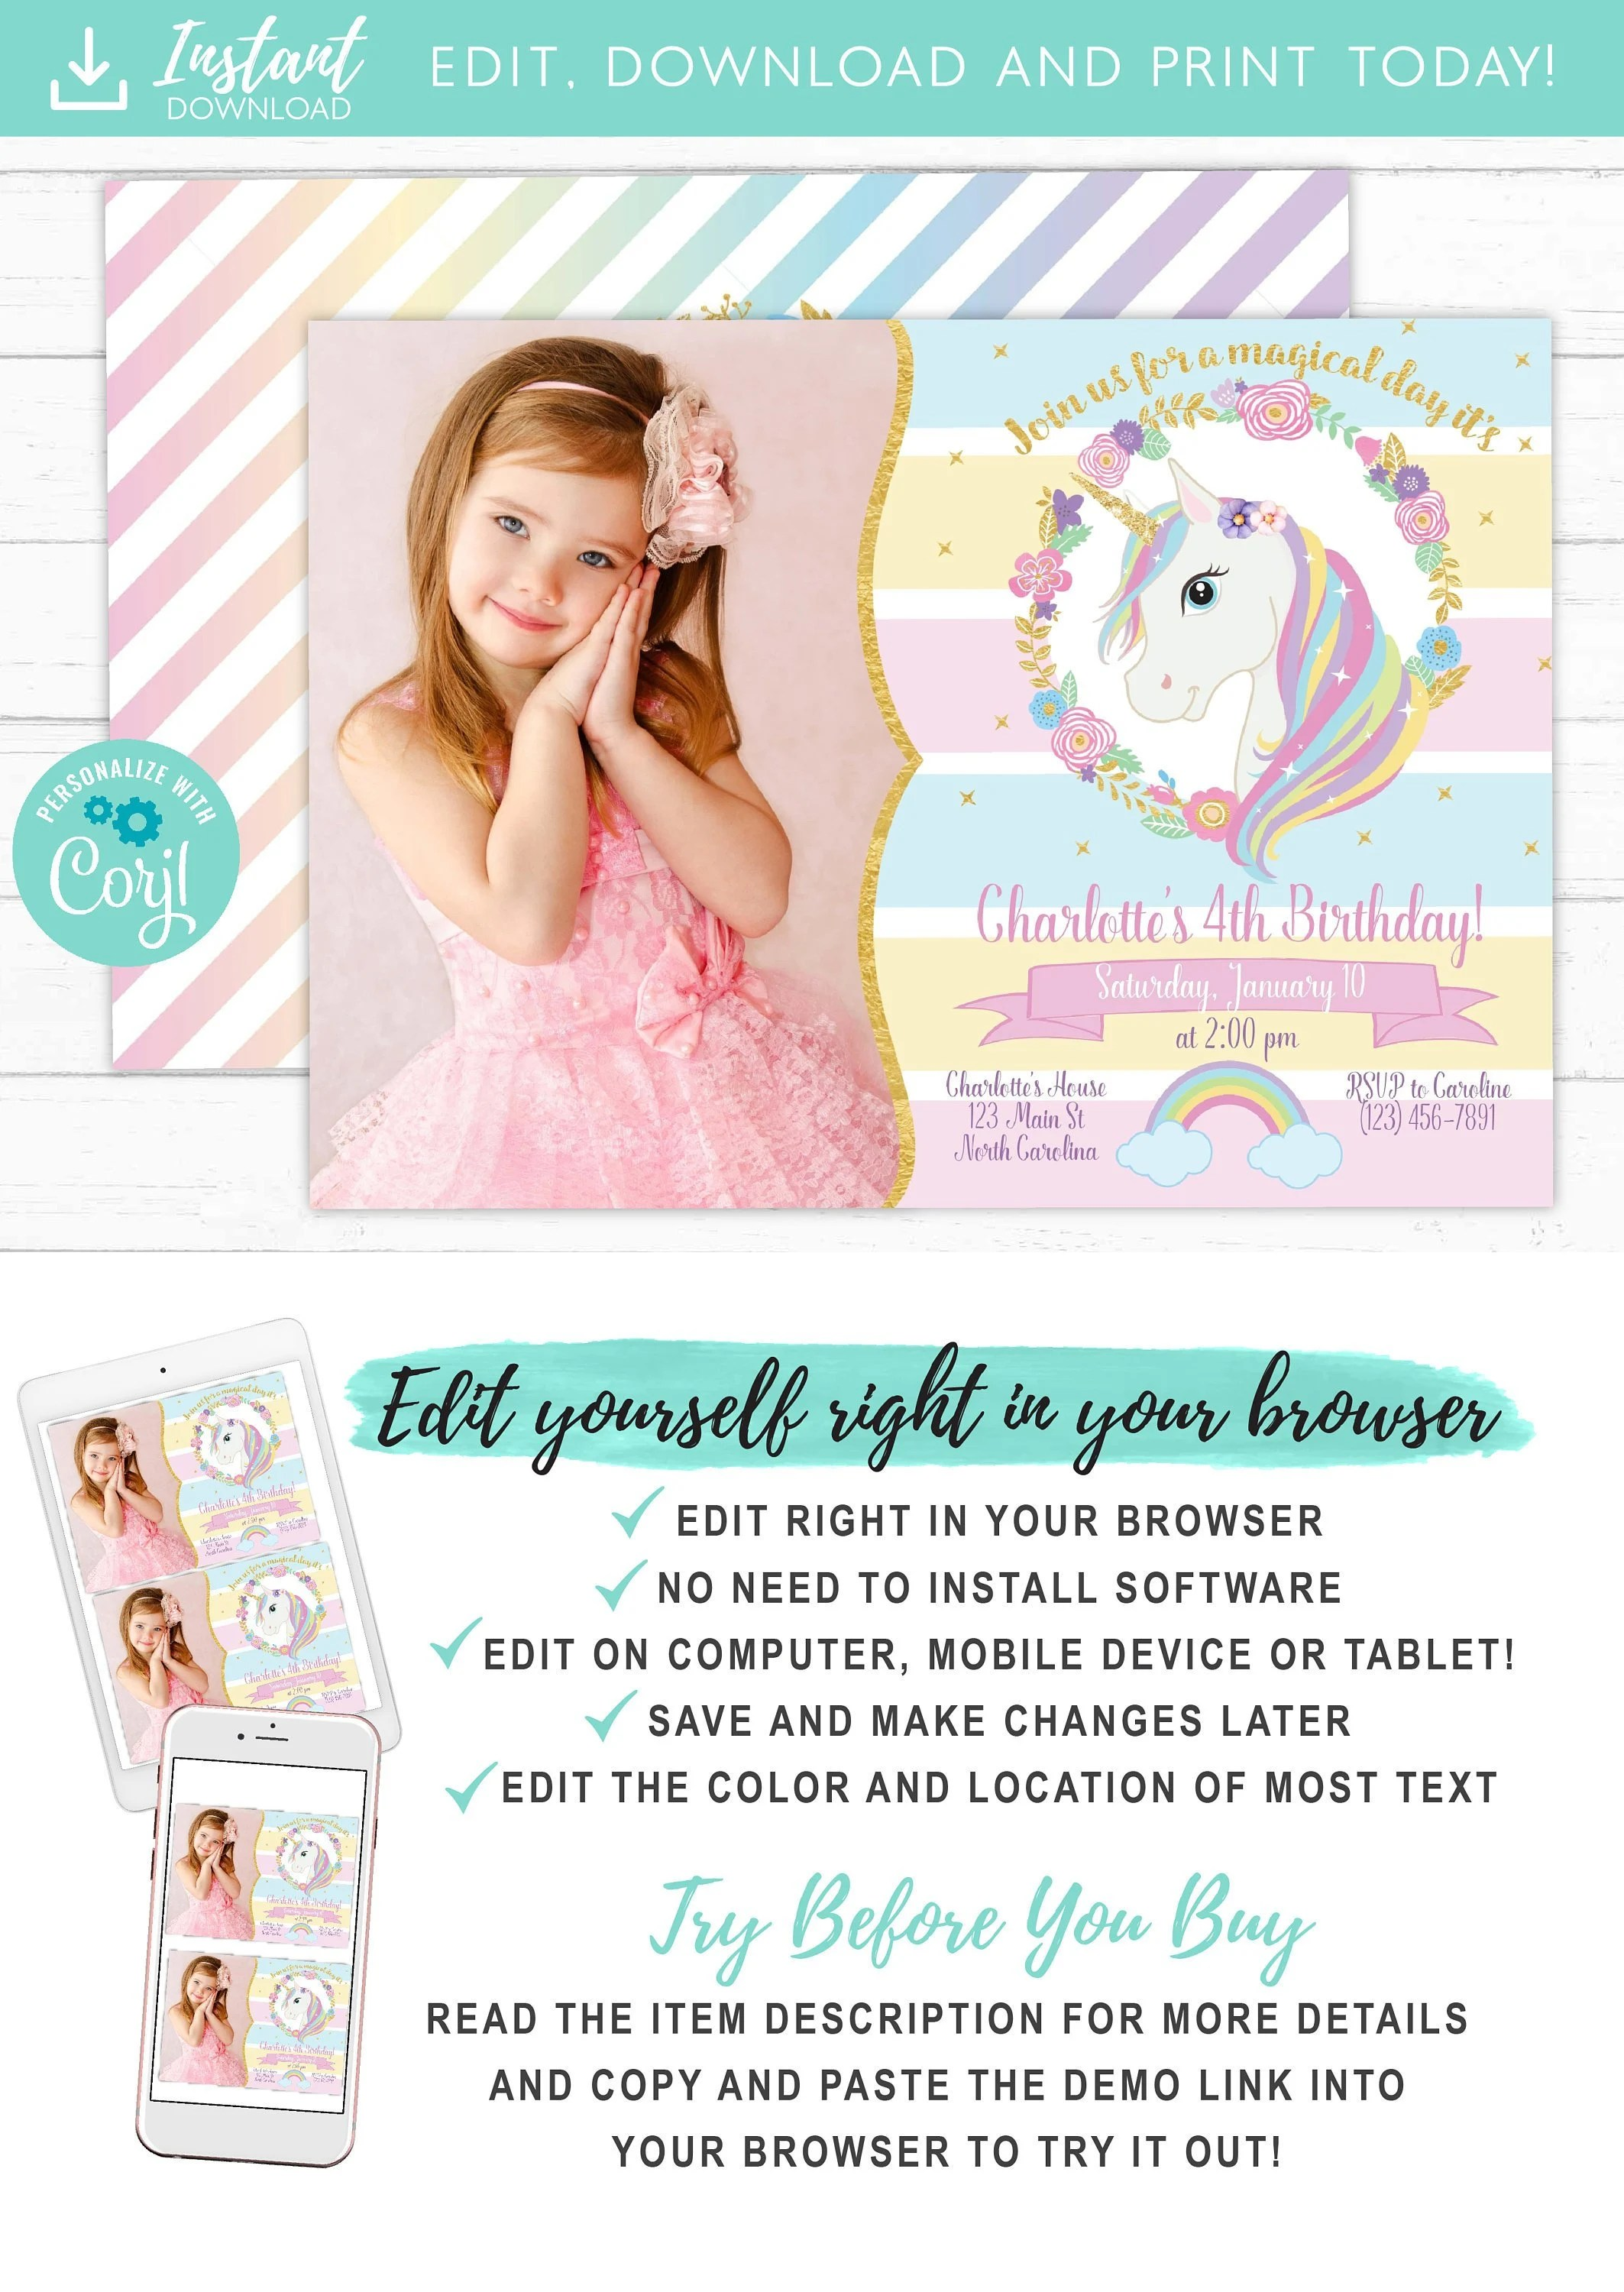 unicorn invitation unicorn party invite magical rainbow unicorn birthday invitation printable with photo free thank you card